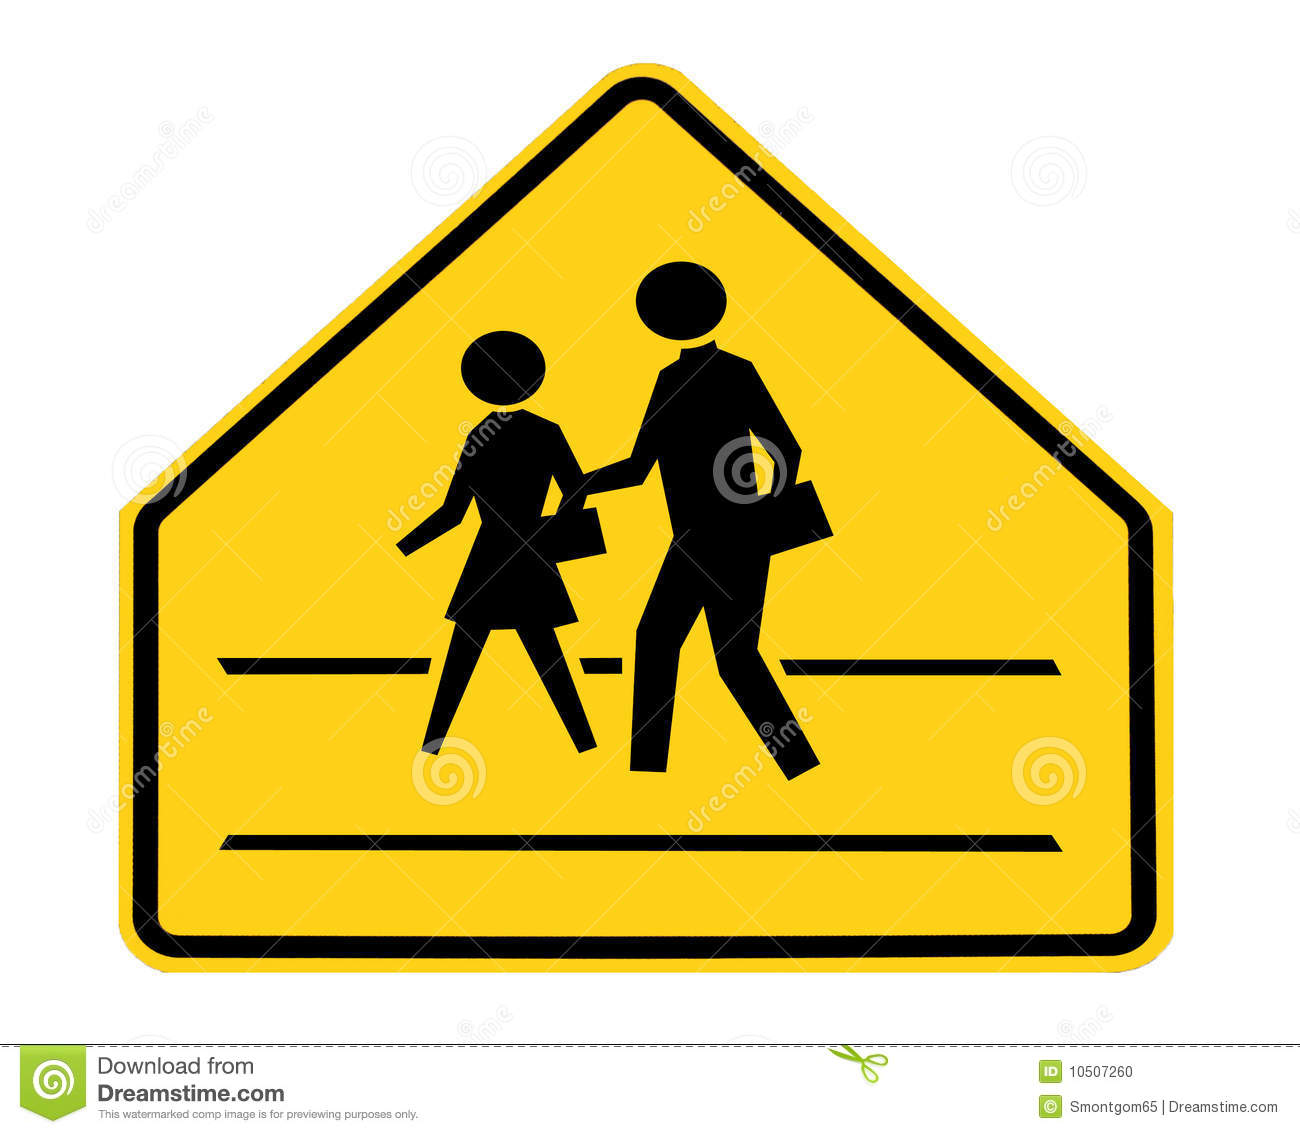 Students Crossing Ahead Sign Royalty-Free Stock Photo ...